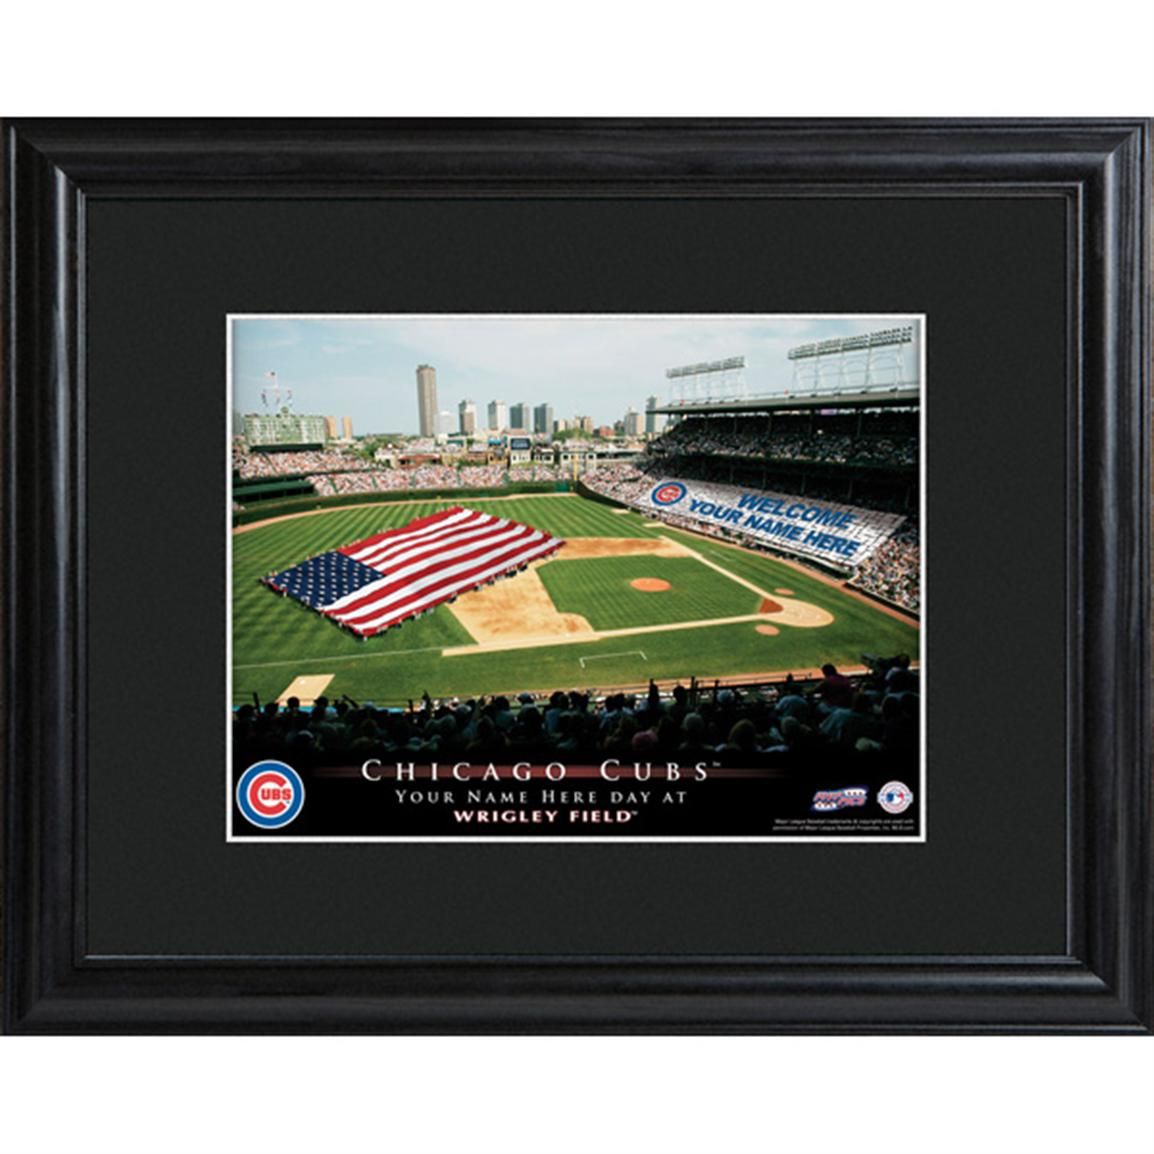 Personalized MLB Stadium Print, Chicago Cubs